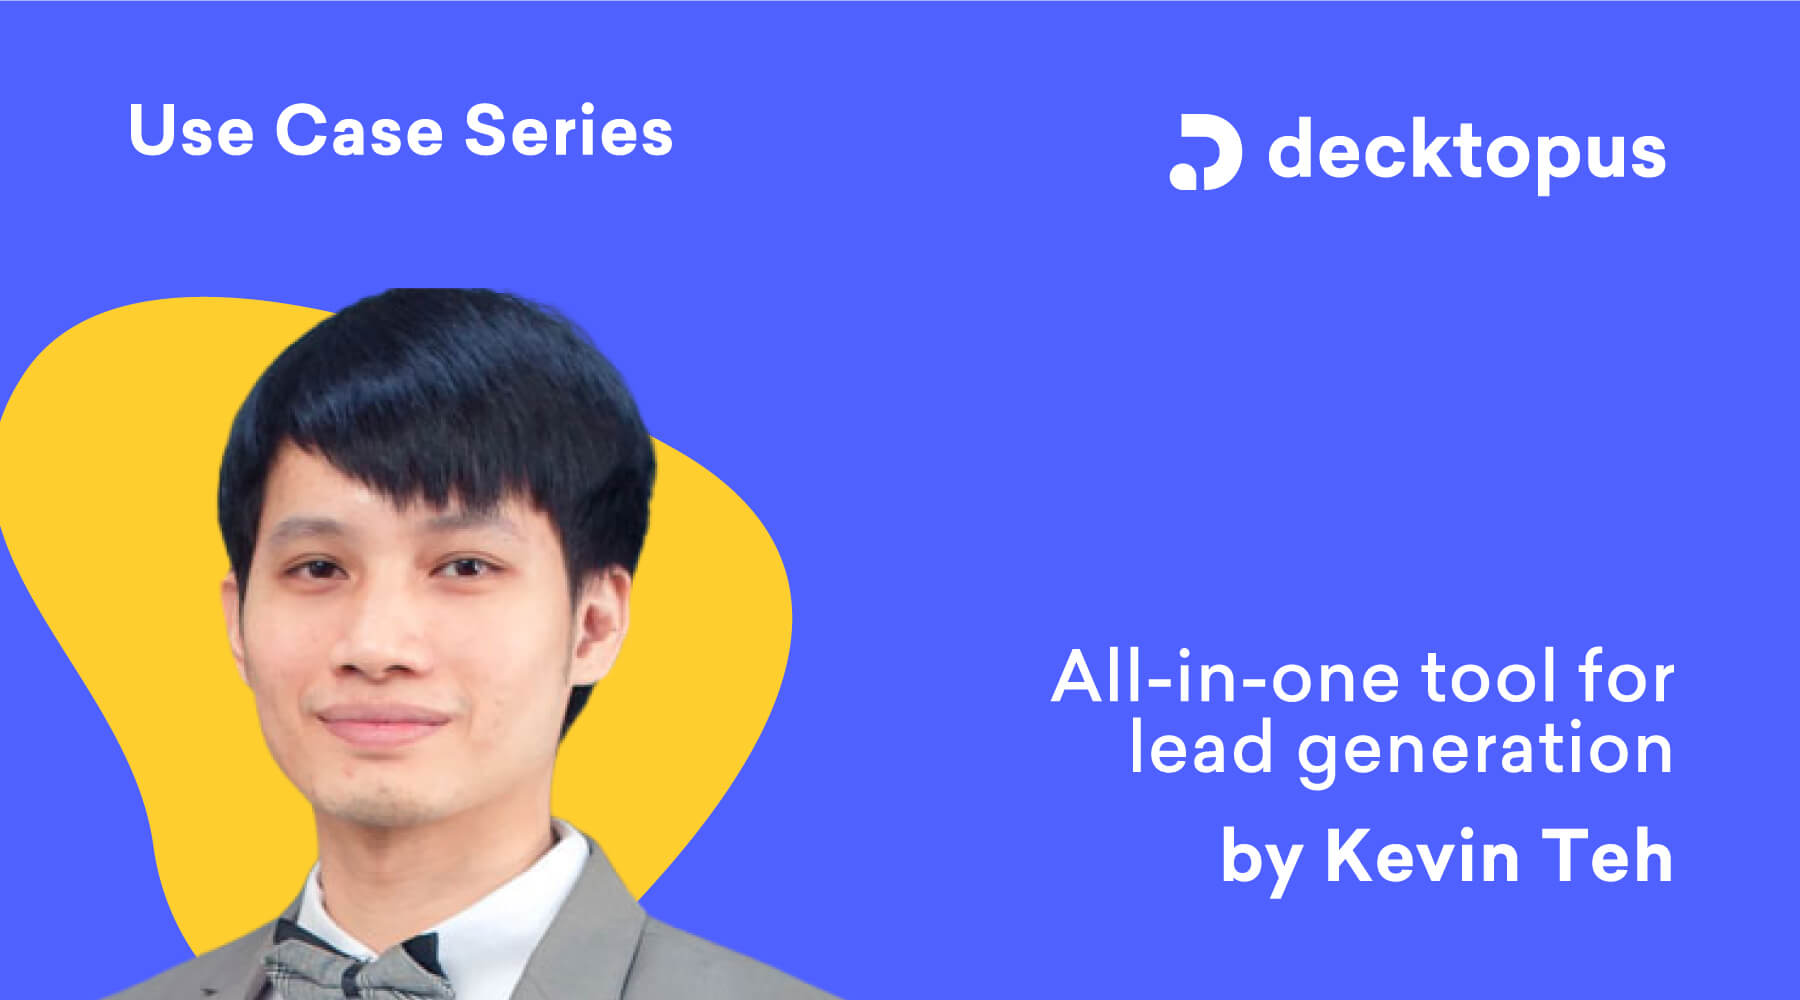 all in on etool for lead generation by kevin teh